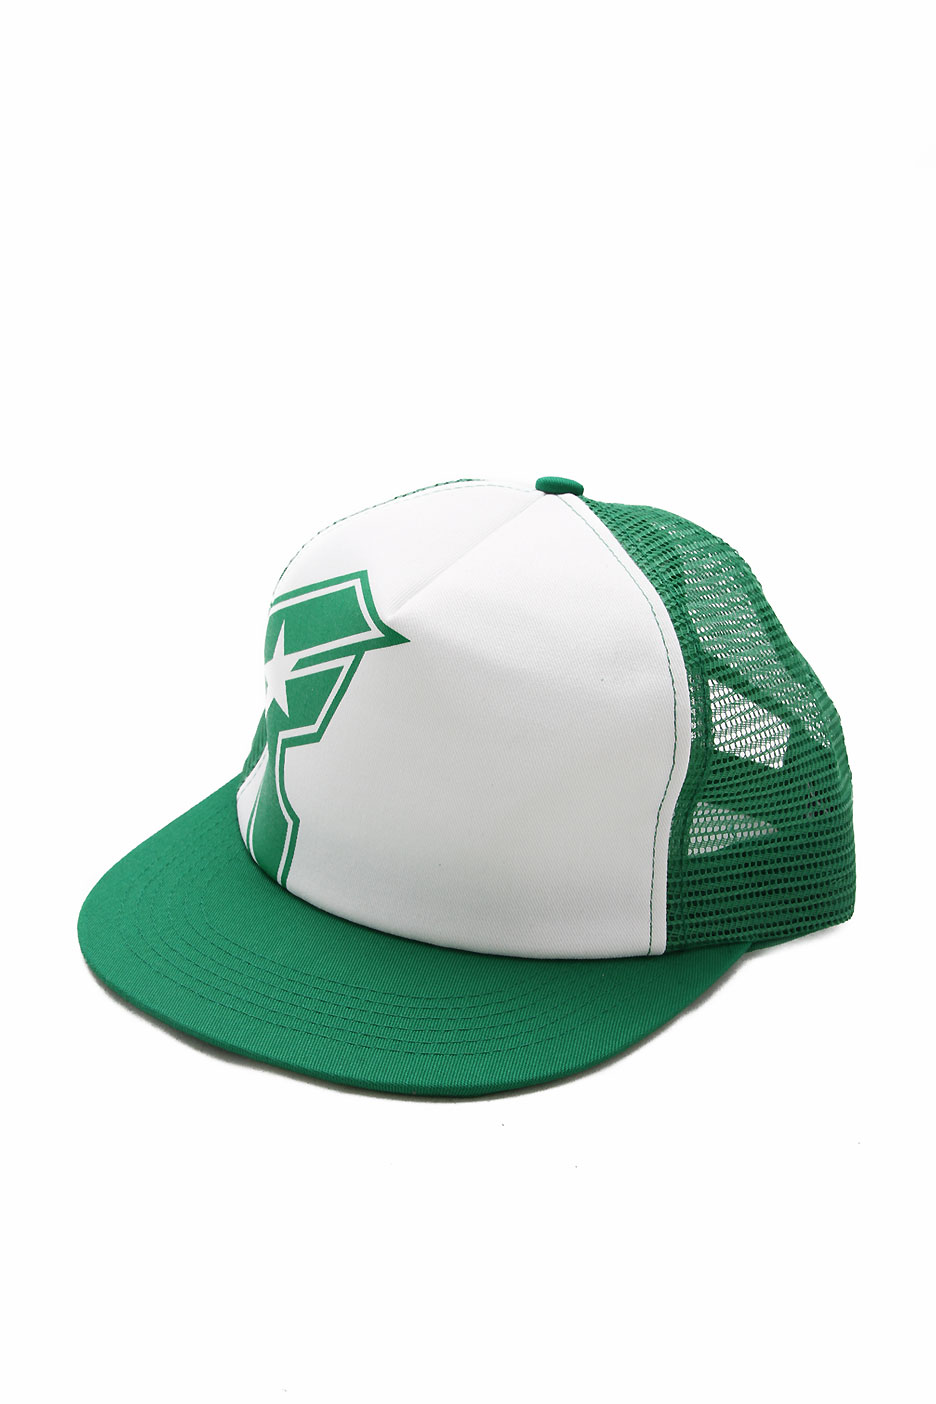 5d290401eeaf14 Famous Stars and Straps - Legend Green - Trucker Cap - Impericon.com US